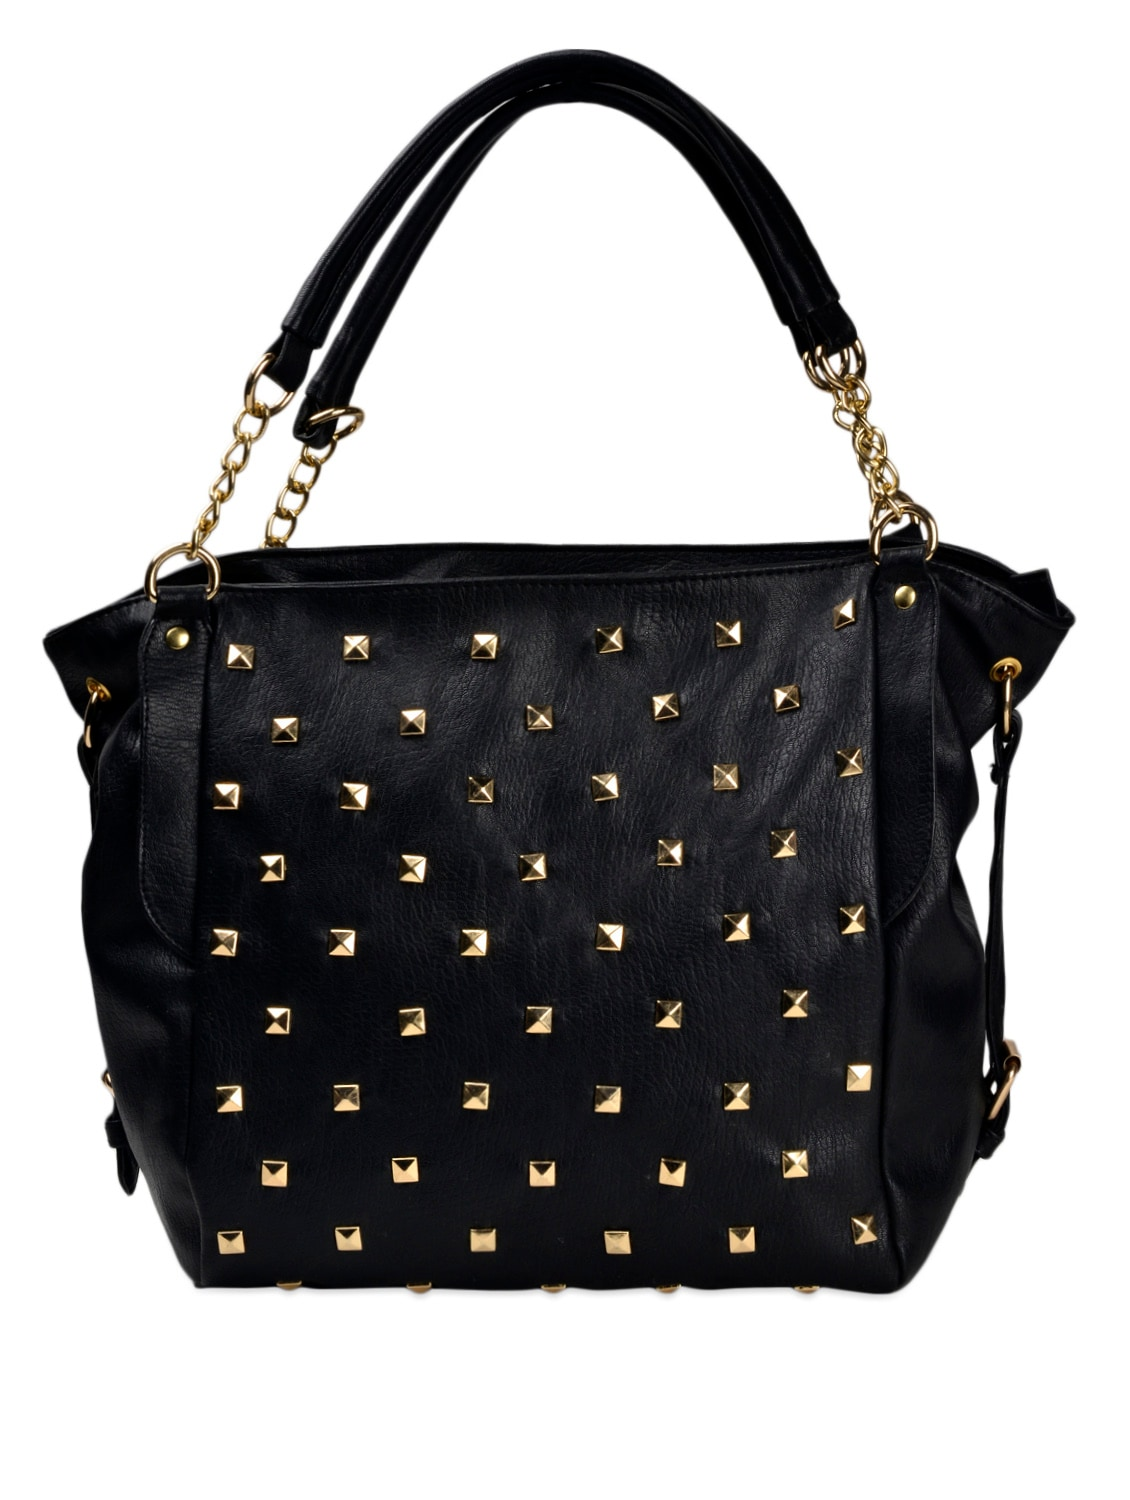 3dbbb4d2e609 Buy Black Leatherette Handbag by Lychee Bags - Online shopping for Handbags  in India